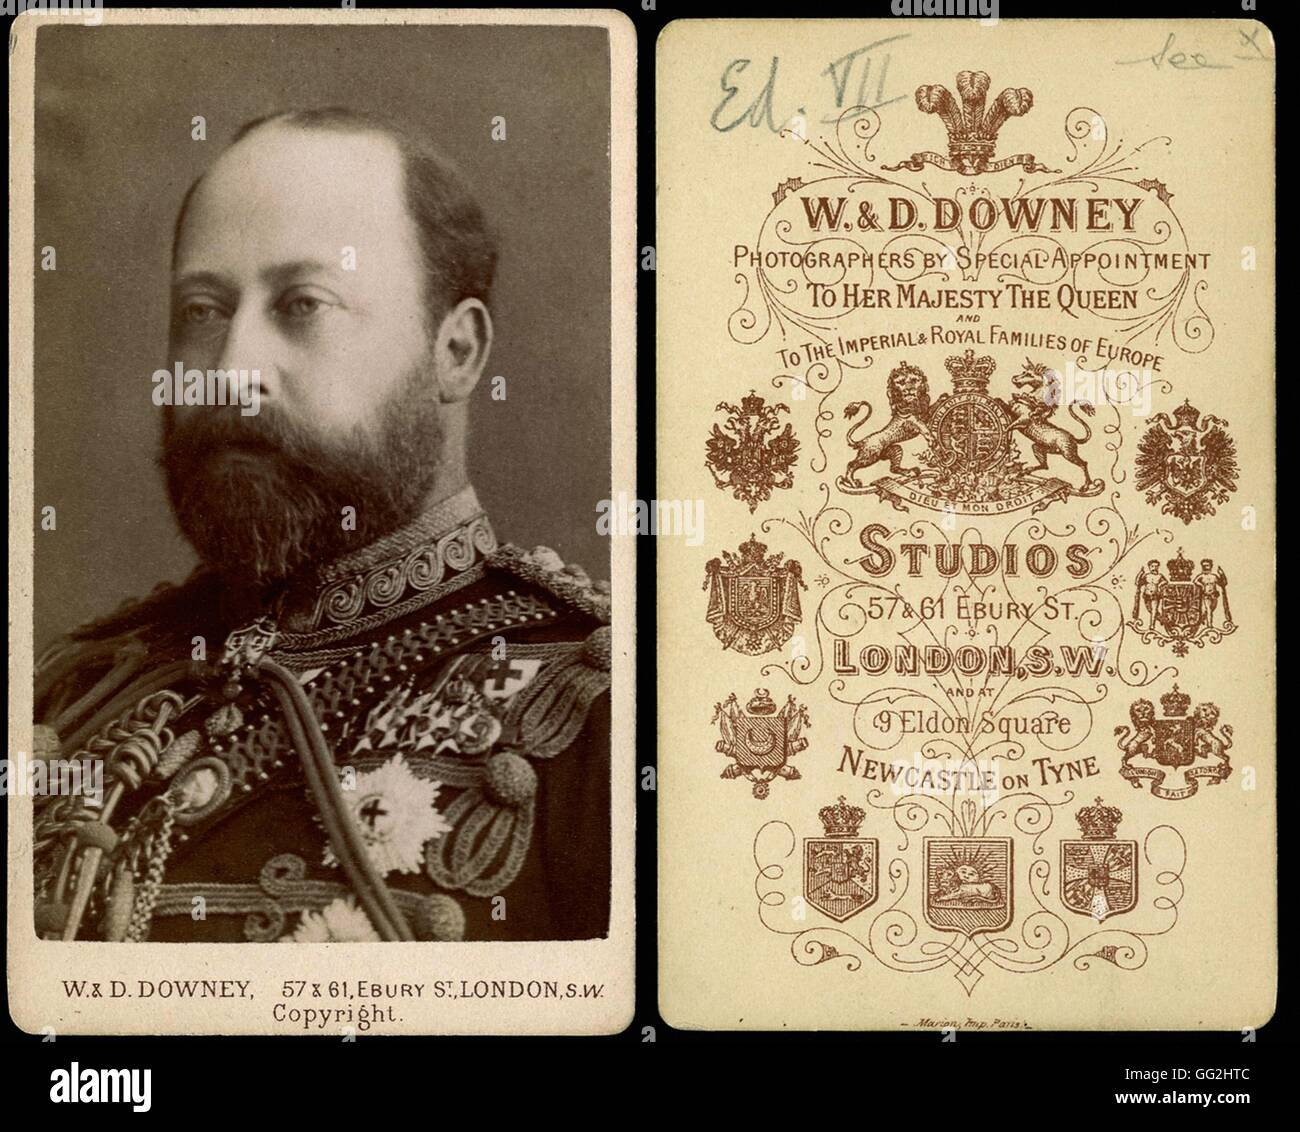 Edouard VII (1841-1910), king of England Photo by R & D. Downey Size : visiting card - Stock Image